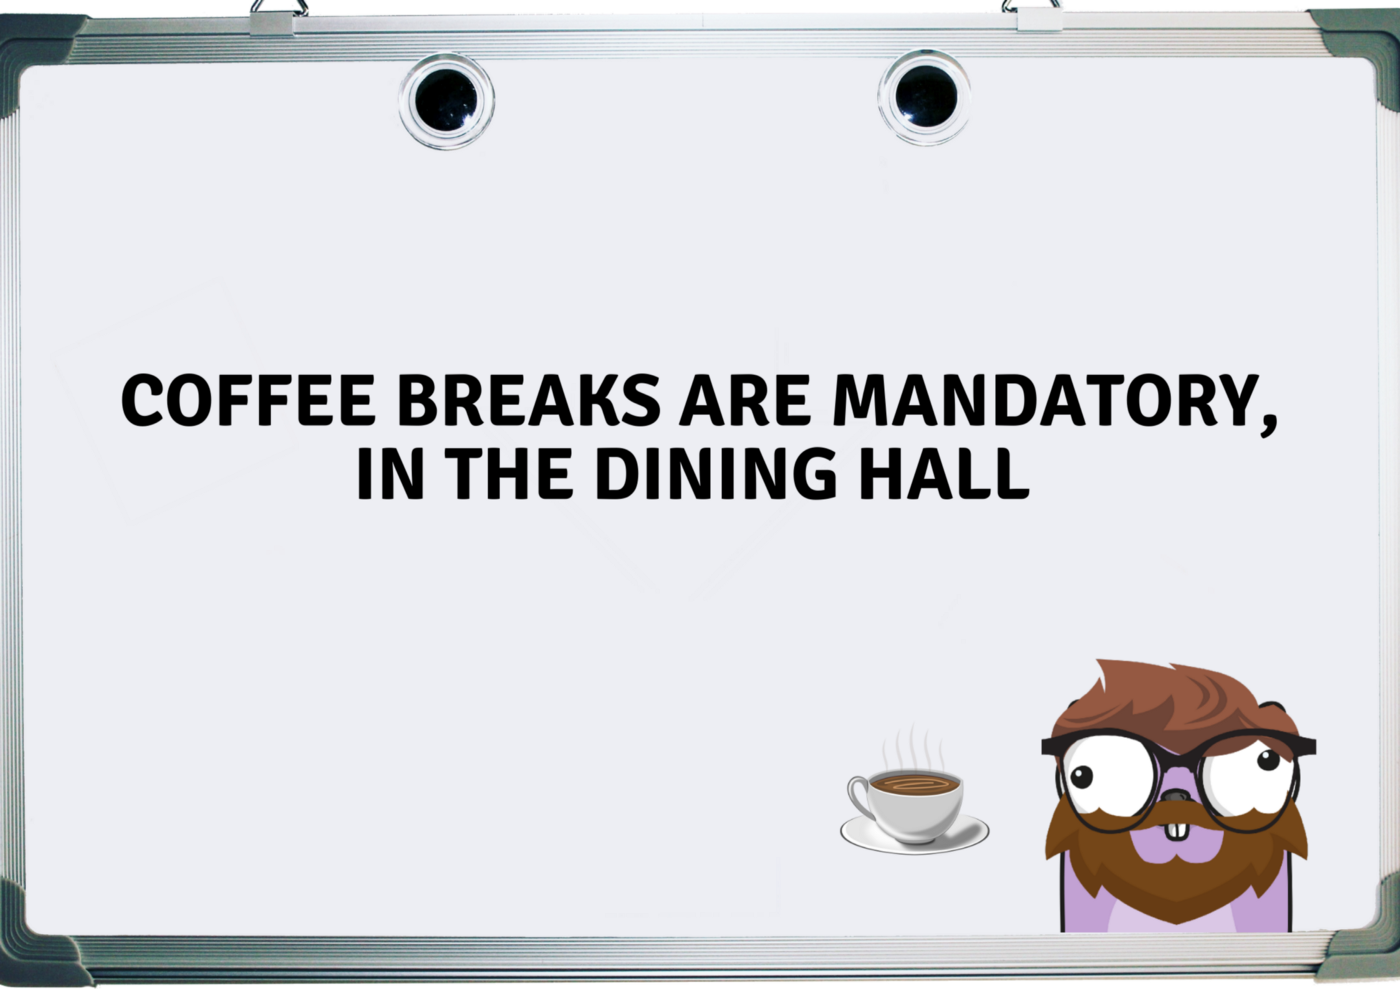 Coffe breaks are mandatory, in the dining hall